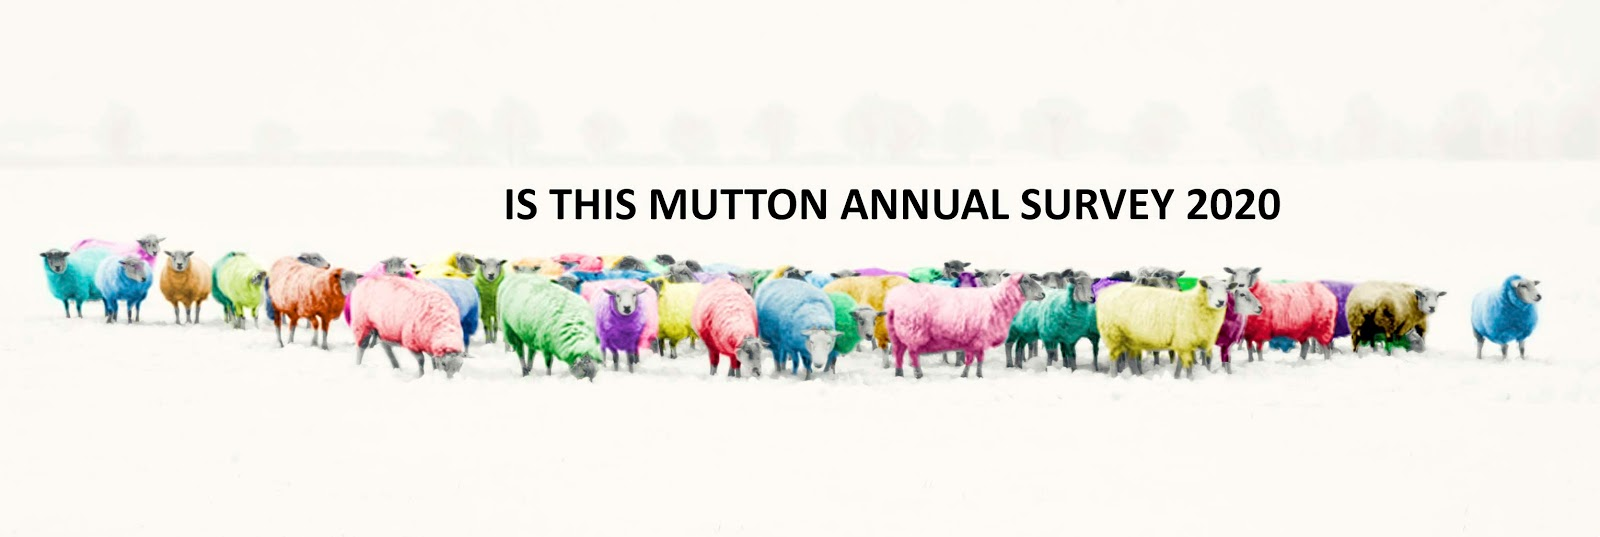 It's time for women over the age of 50 to make their voices heard. Take part in the 2020 annual Is This Mutton? survey on attitudes to ageing, fashion and beauty.